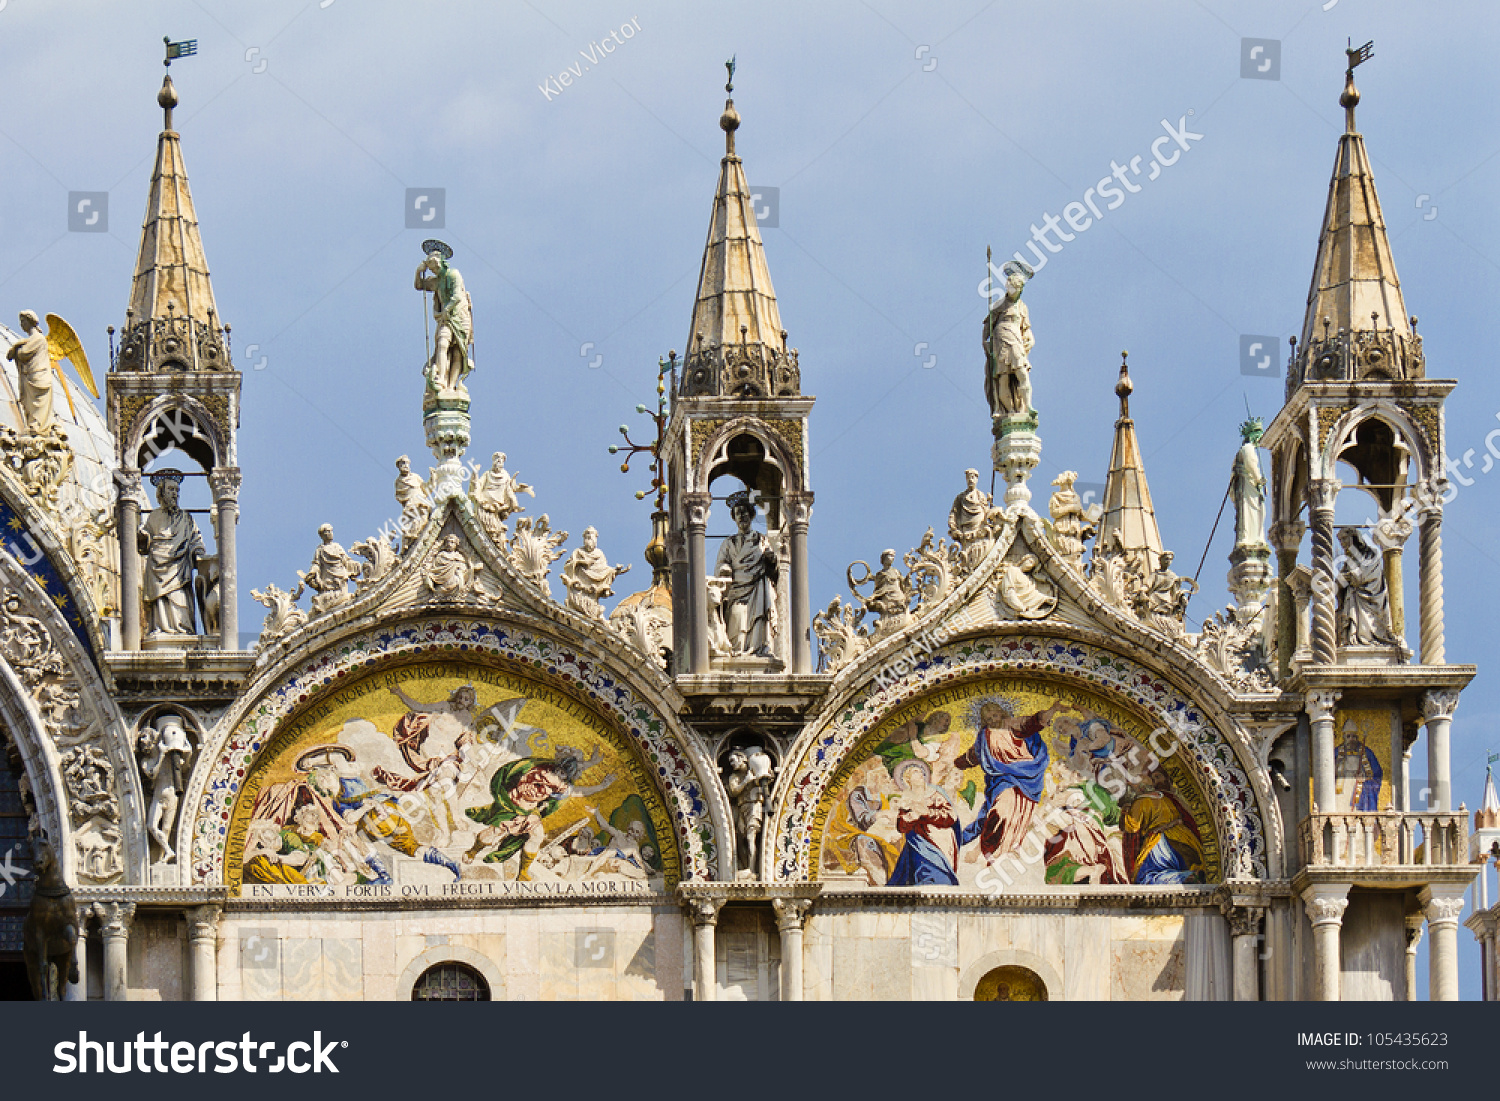 Architectural Fragment Of Upper Part Of Basilica Patriarchal Cathedral Basilica Of Saint Mark Is